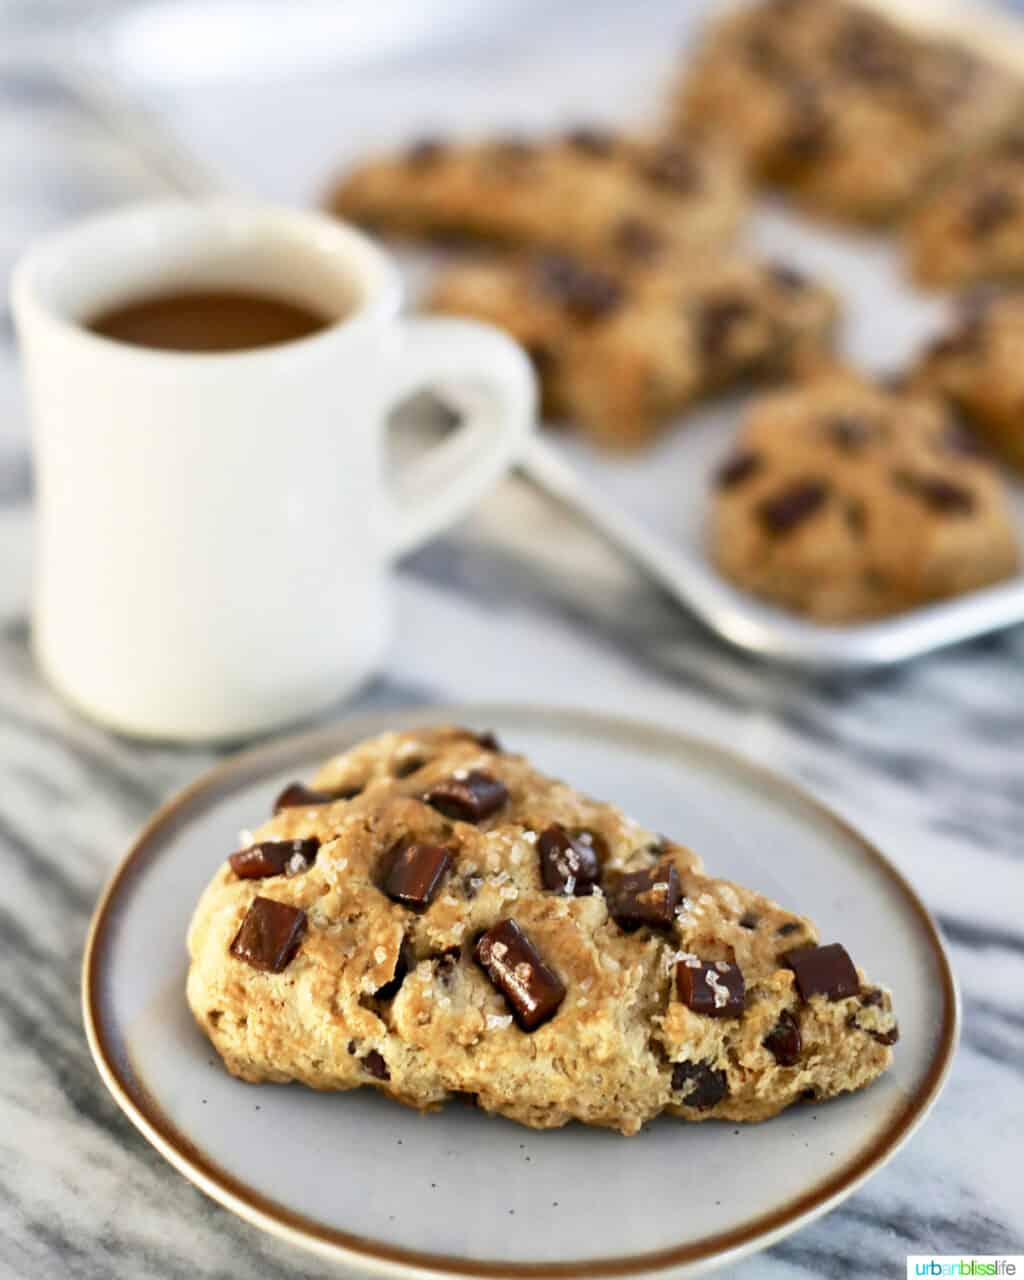 mocha chocolate chip scones with coffee cup